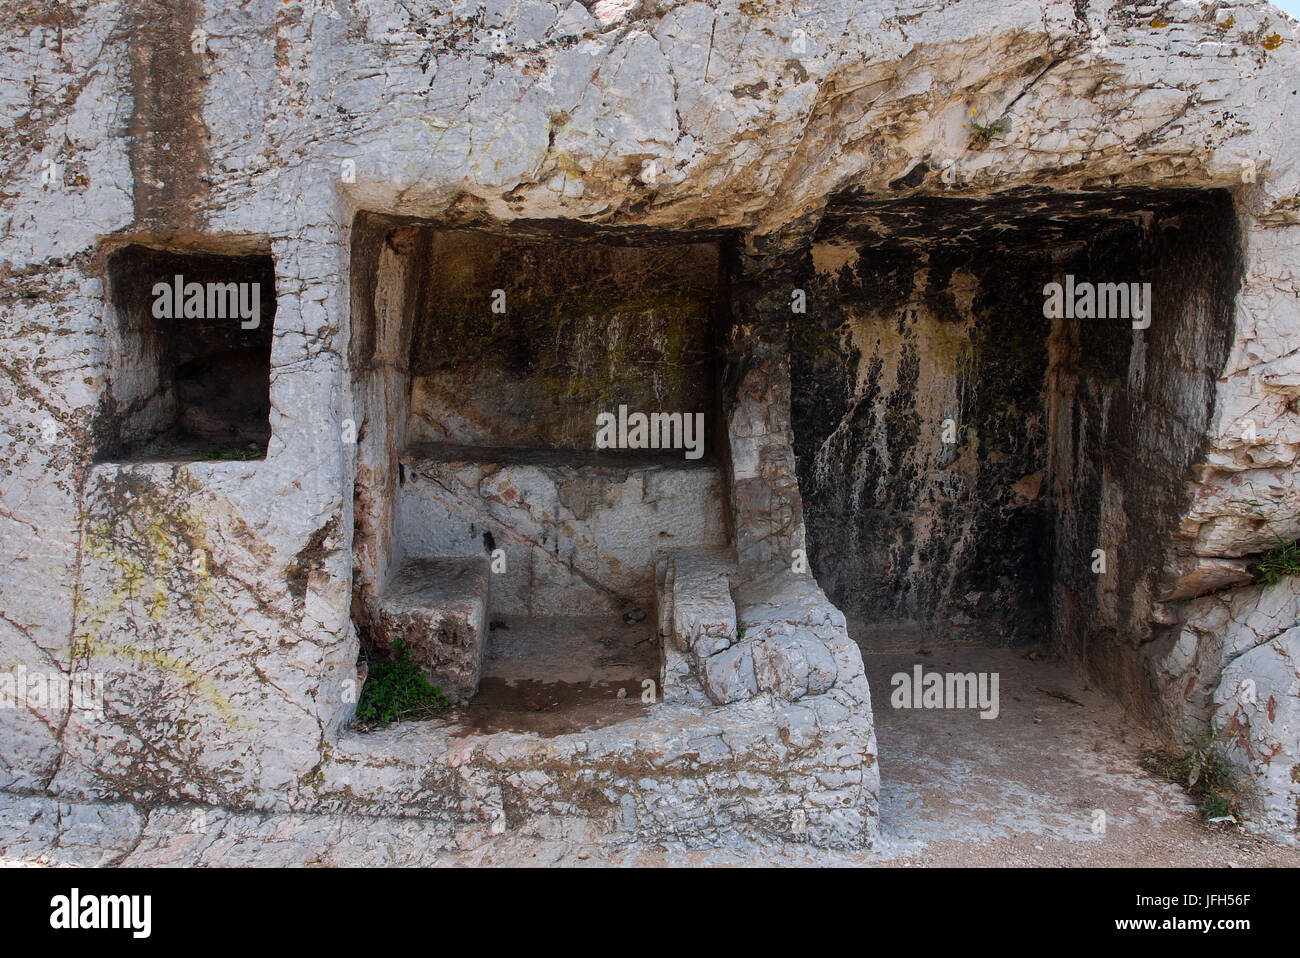 Antic hand cutted stones at Filopappou Hill, Athens (Greece) - Stock Image